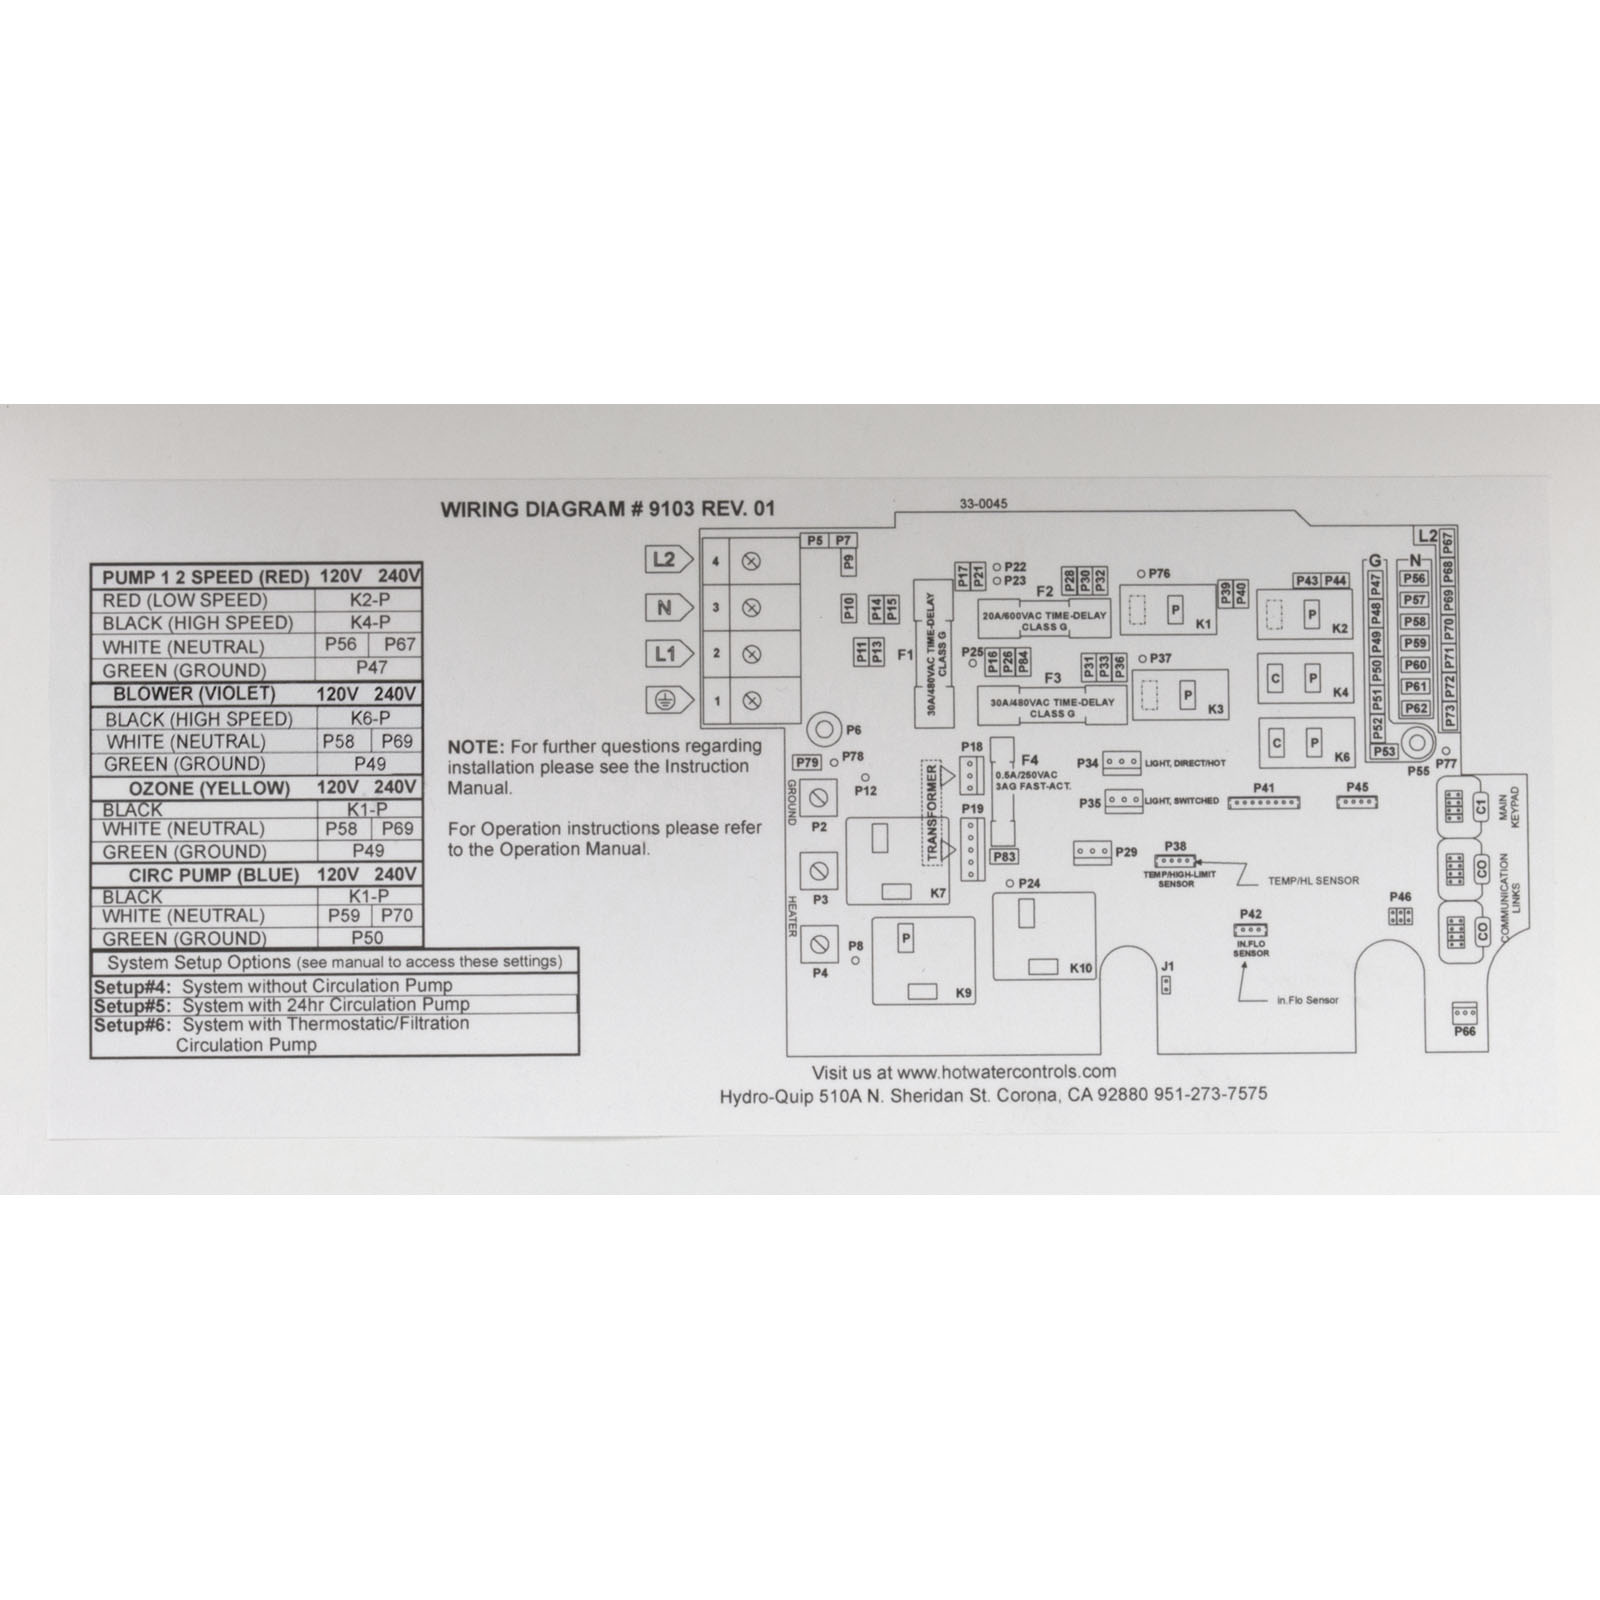 Balboa Hydro Quip Wiring Diagram on hydro quip relay, hydropower diagram, hydro quip ht 600, hydro quip control panel, hydro quip parts, hydro pump diagram, hydro quip spa electrical wiring, hydro quip 1001, hydro quip 3100 wiring, hydro quip controller, hydro spa wiring diagram, hydro quip manual 9000, hydro quip transformer, hydro air wiring diagram, hydro quip model numbers, tip and ring diagram,